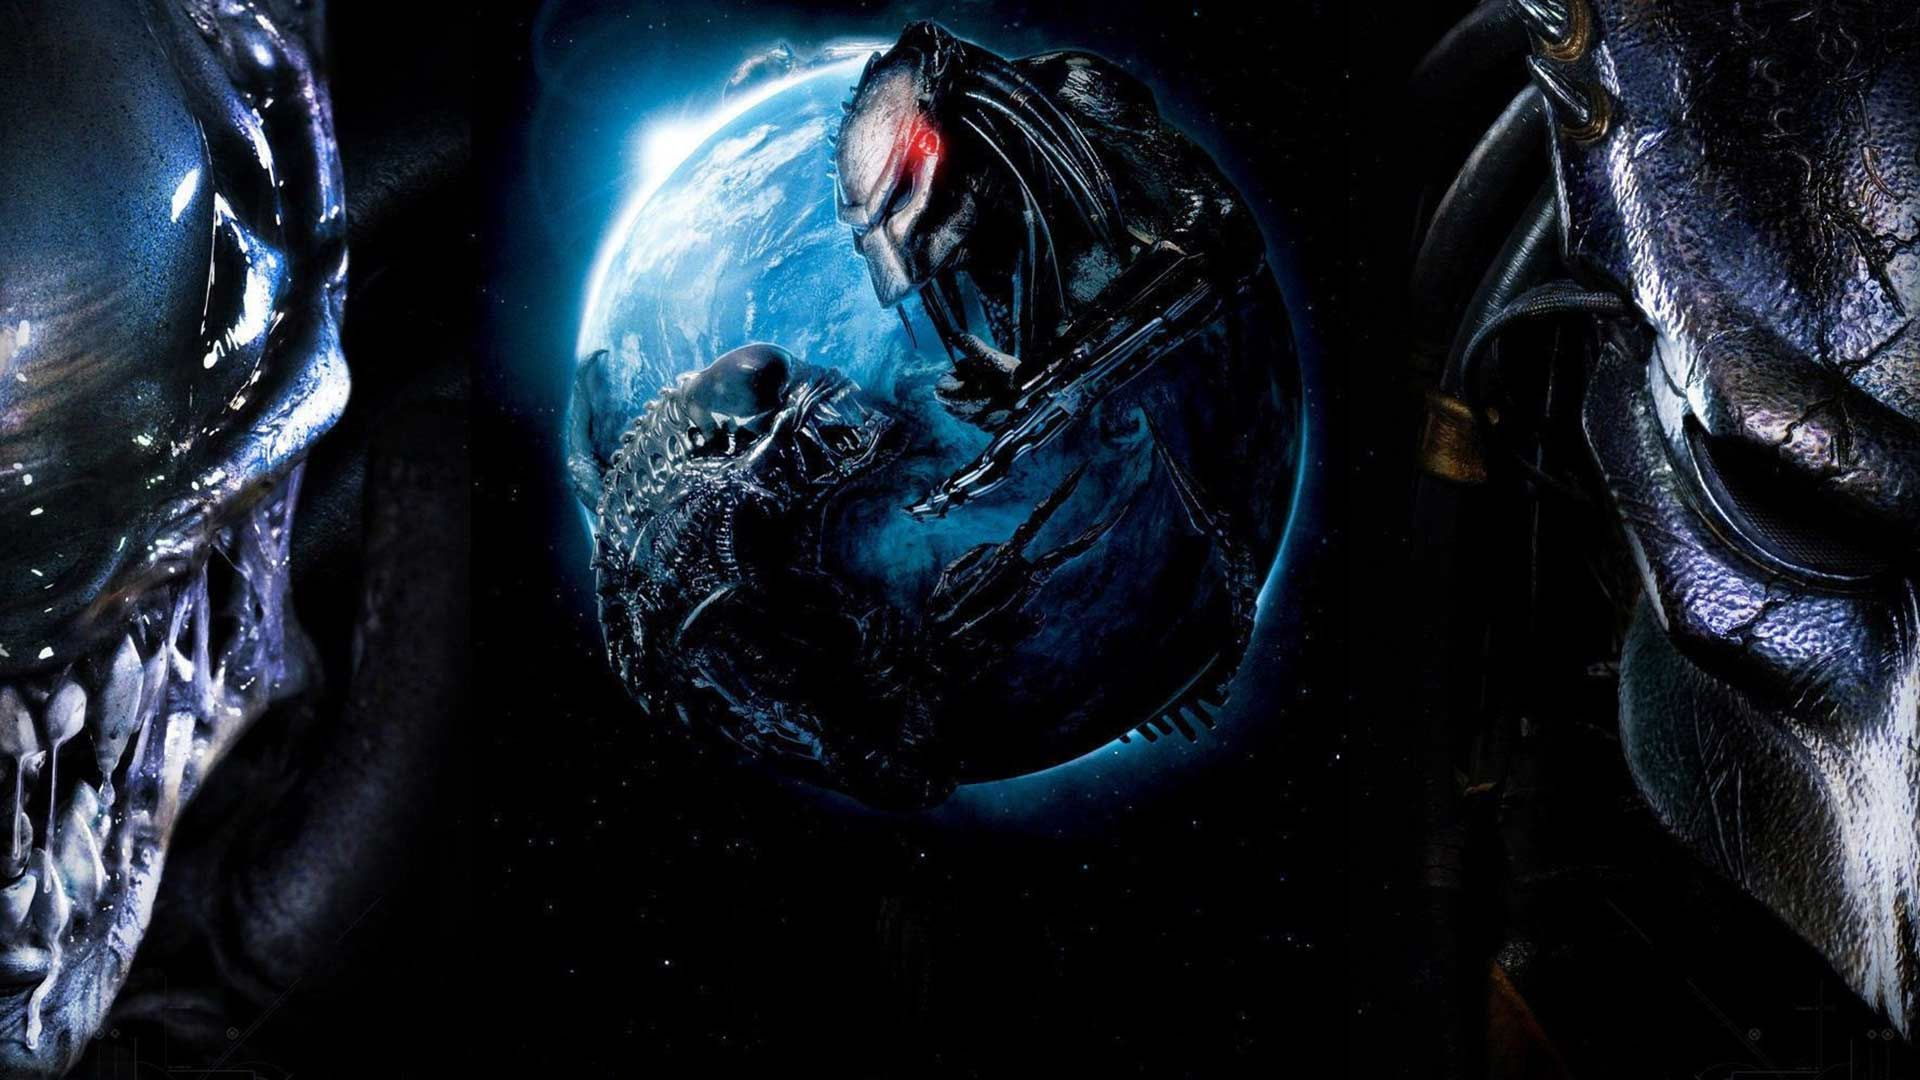 Alien VS Predator Movie Wallpaper Alien vs predator